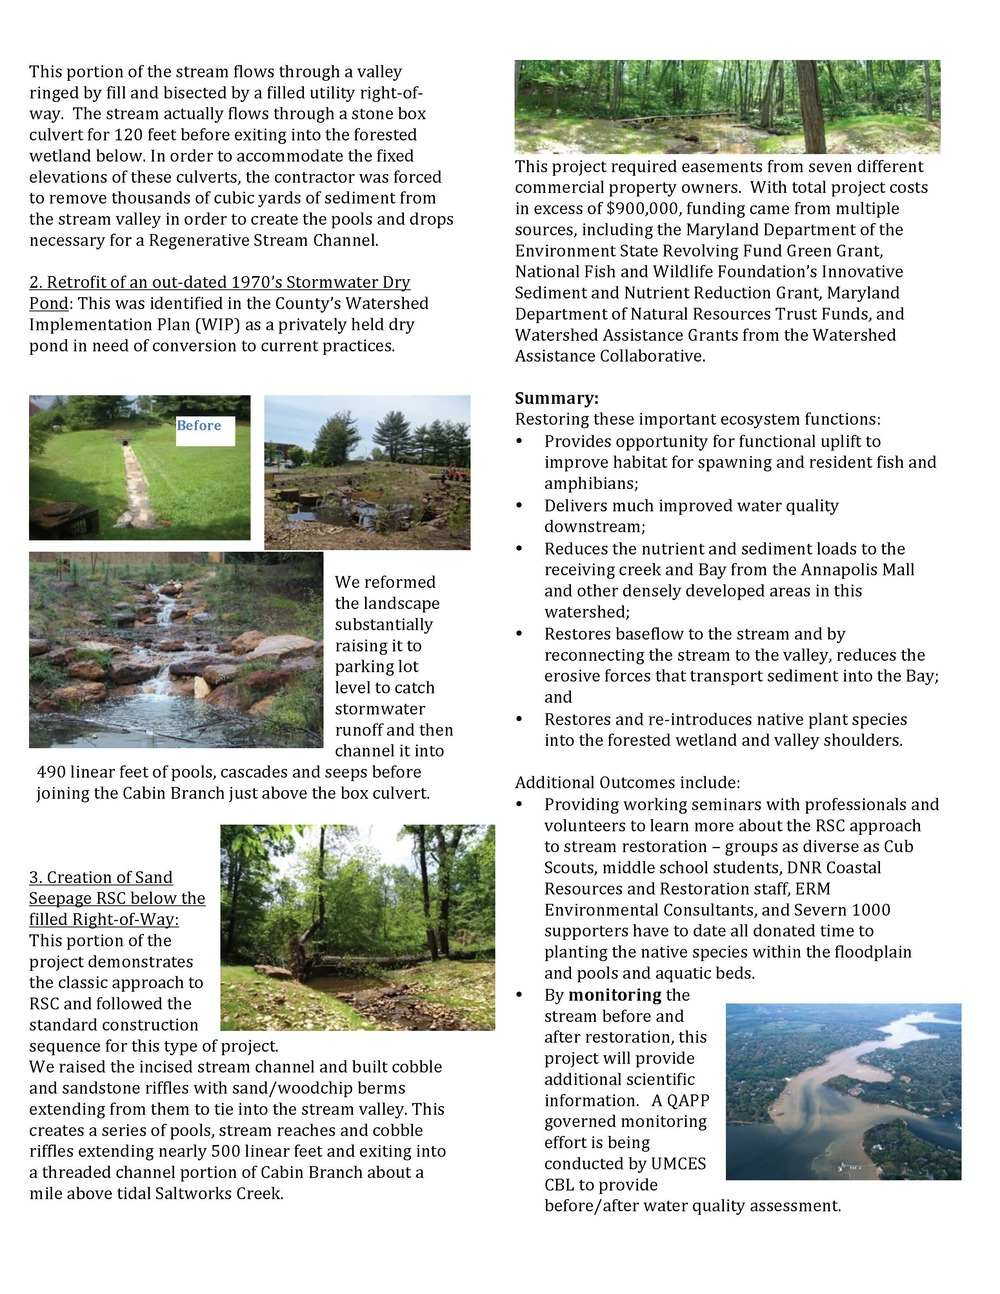 Cabin Branch Fact Sheet Dec 2013 med reduced_Page_2.jpg